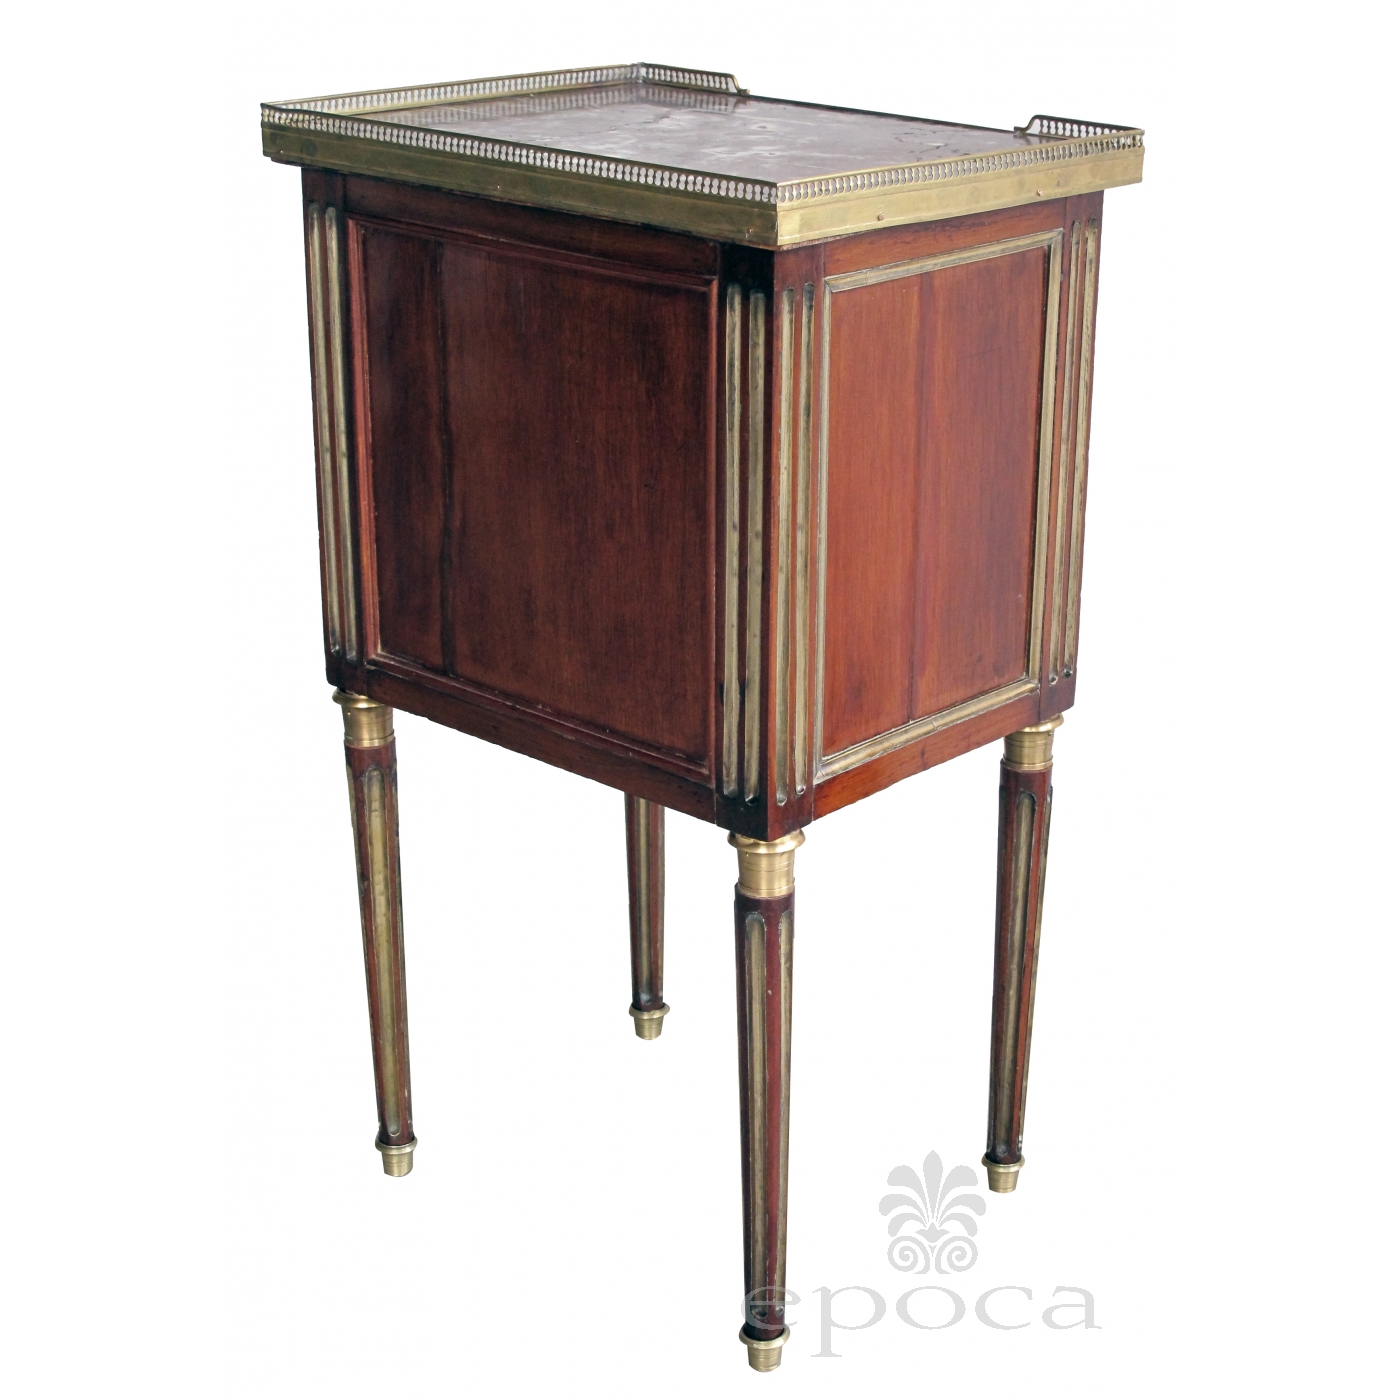 Merveilleux ... A Good Quality French Louis XVI 3 Drawer Mahogany Commode With Marble  Top And Gilt ...